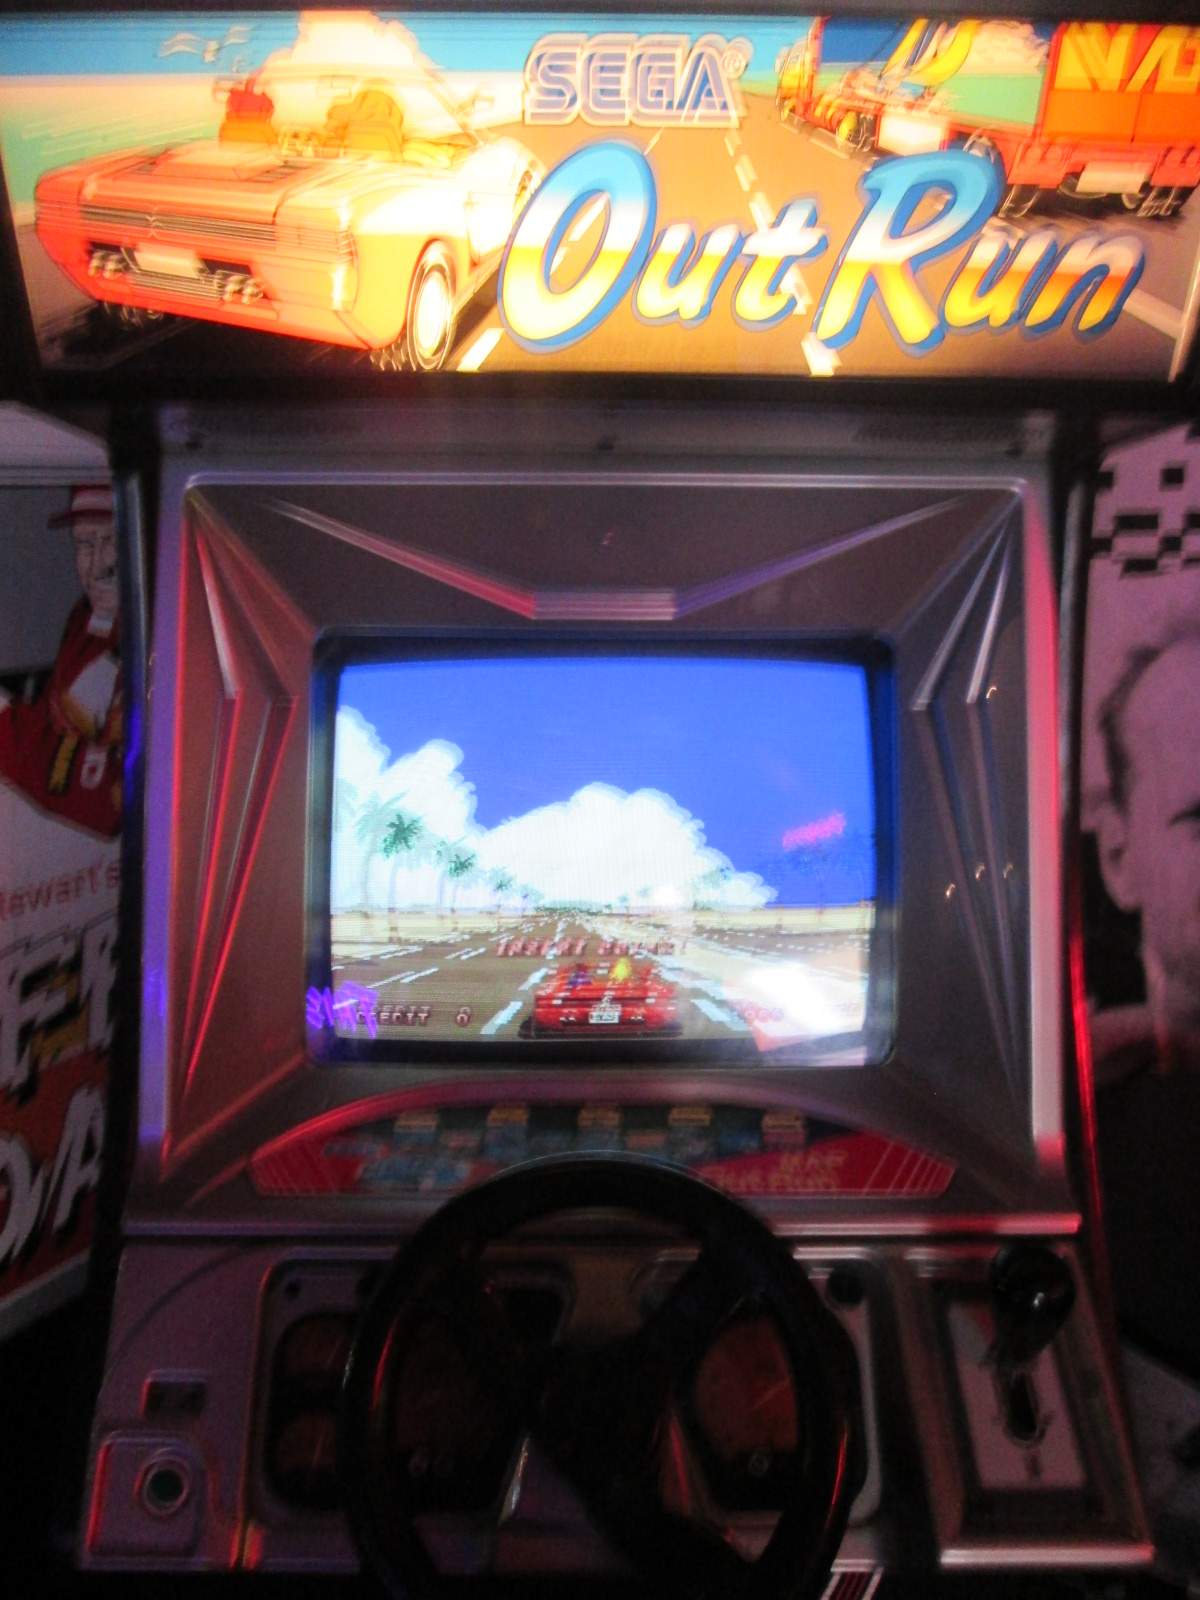 ed1475: Outrun (Arcade) 649,260 points on 2016-09-04 15:29:29